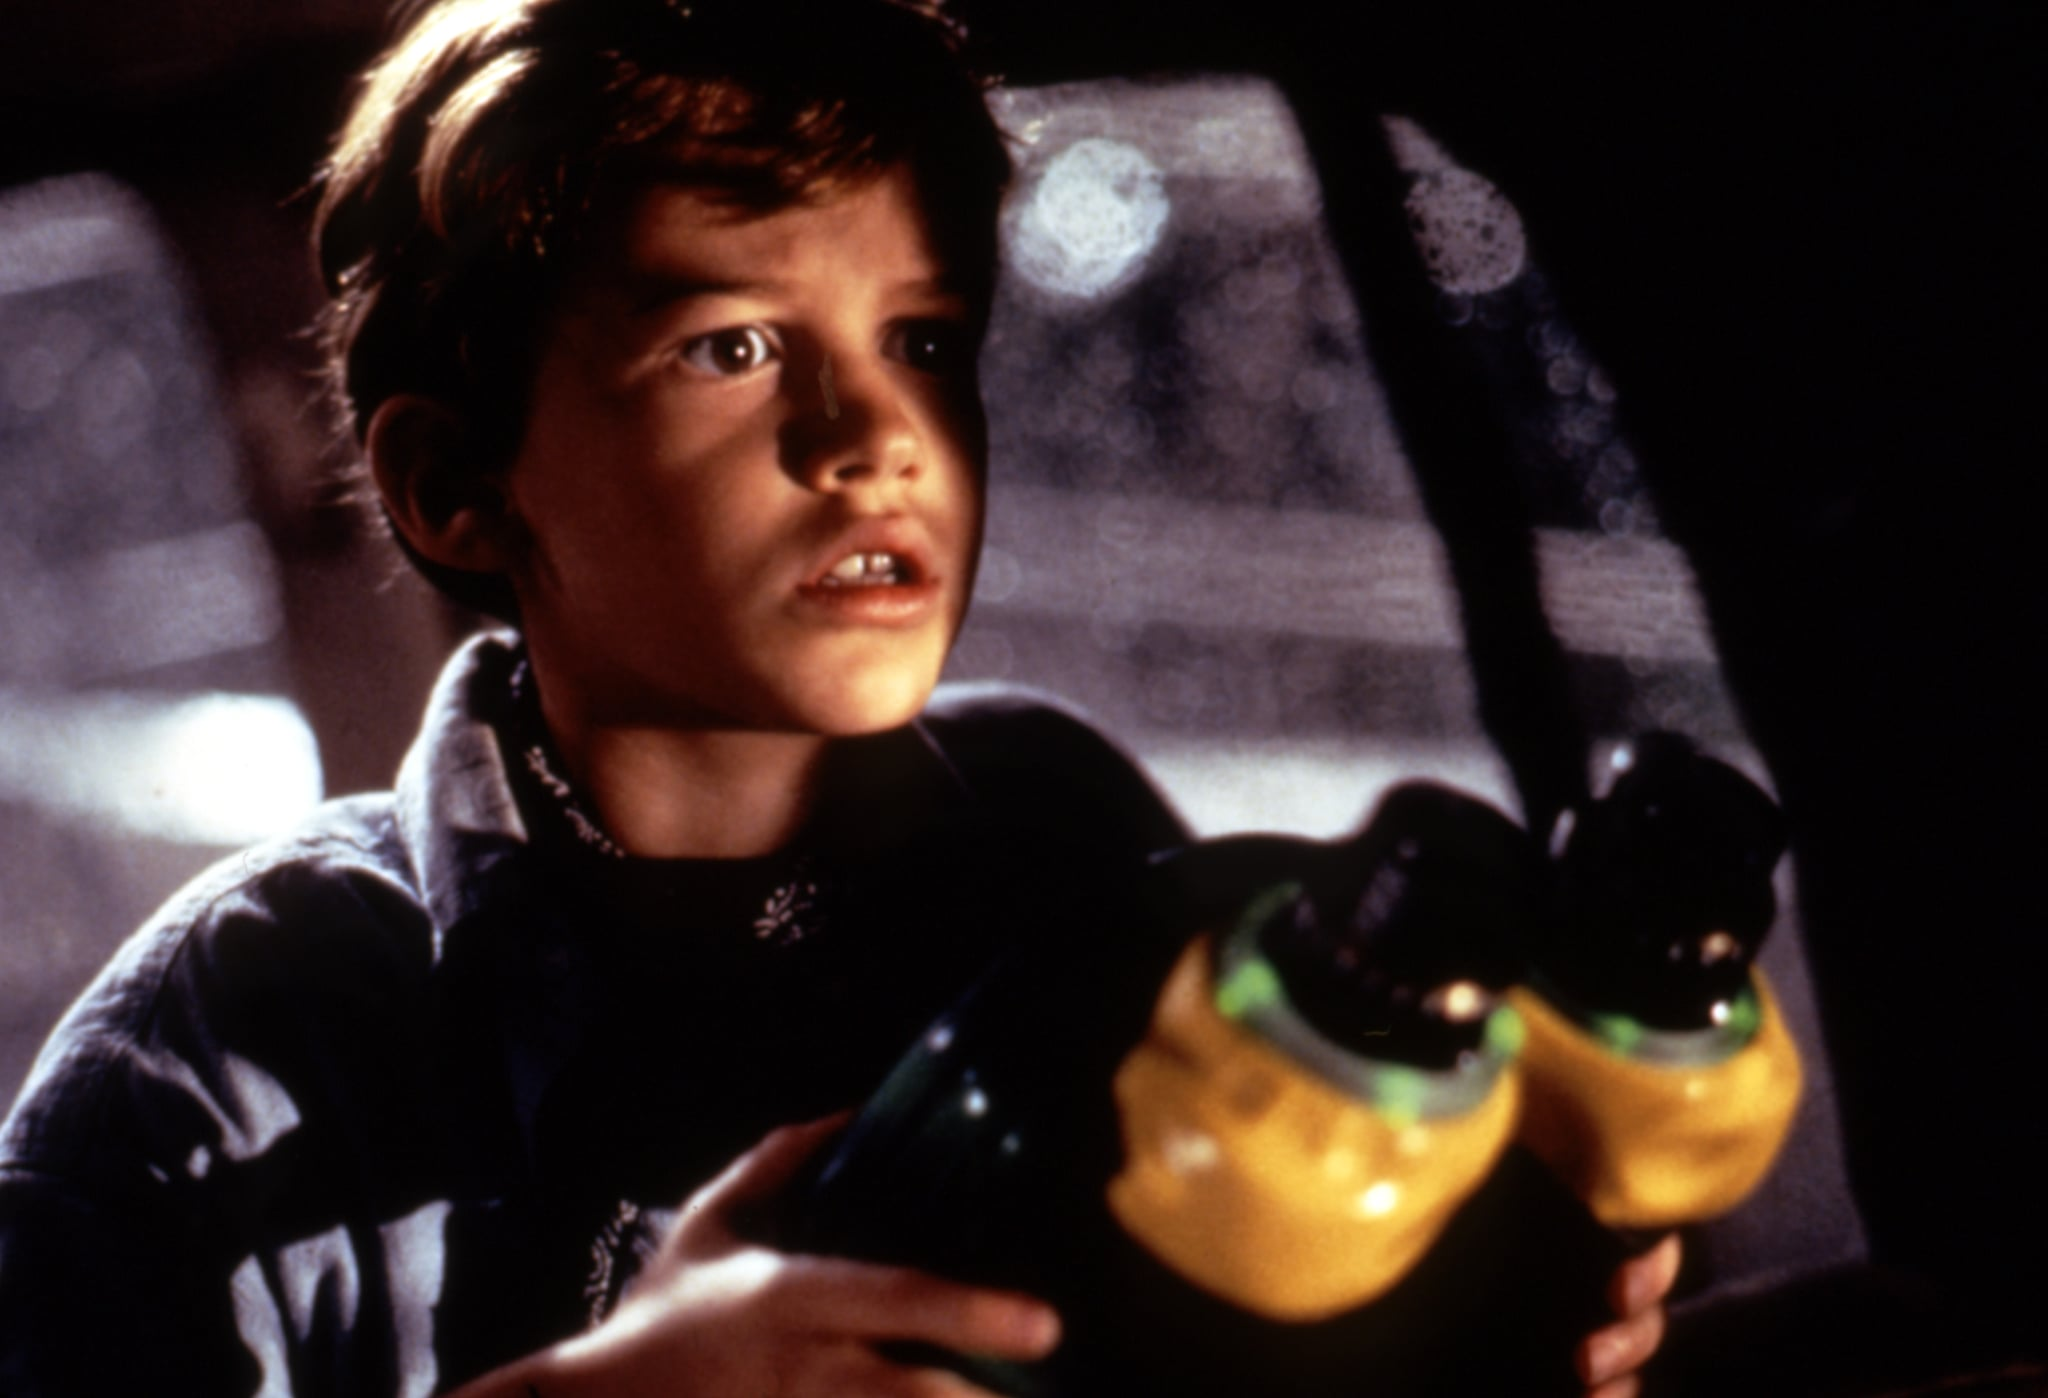 JURASSIC PARK, Joseph Mazzello, 1993, (c)MCA/courtesy Everett Collection